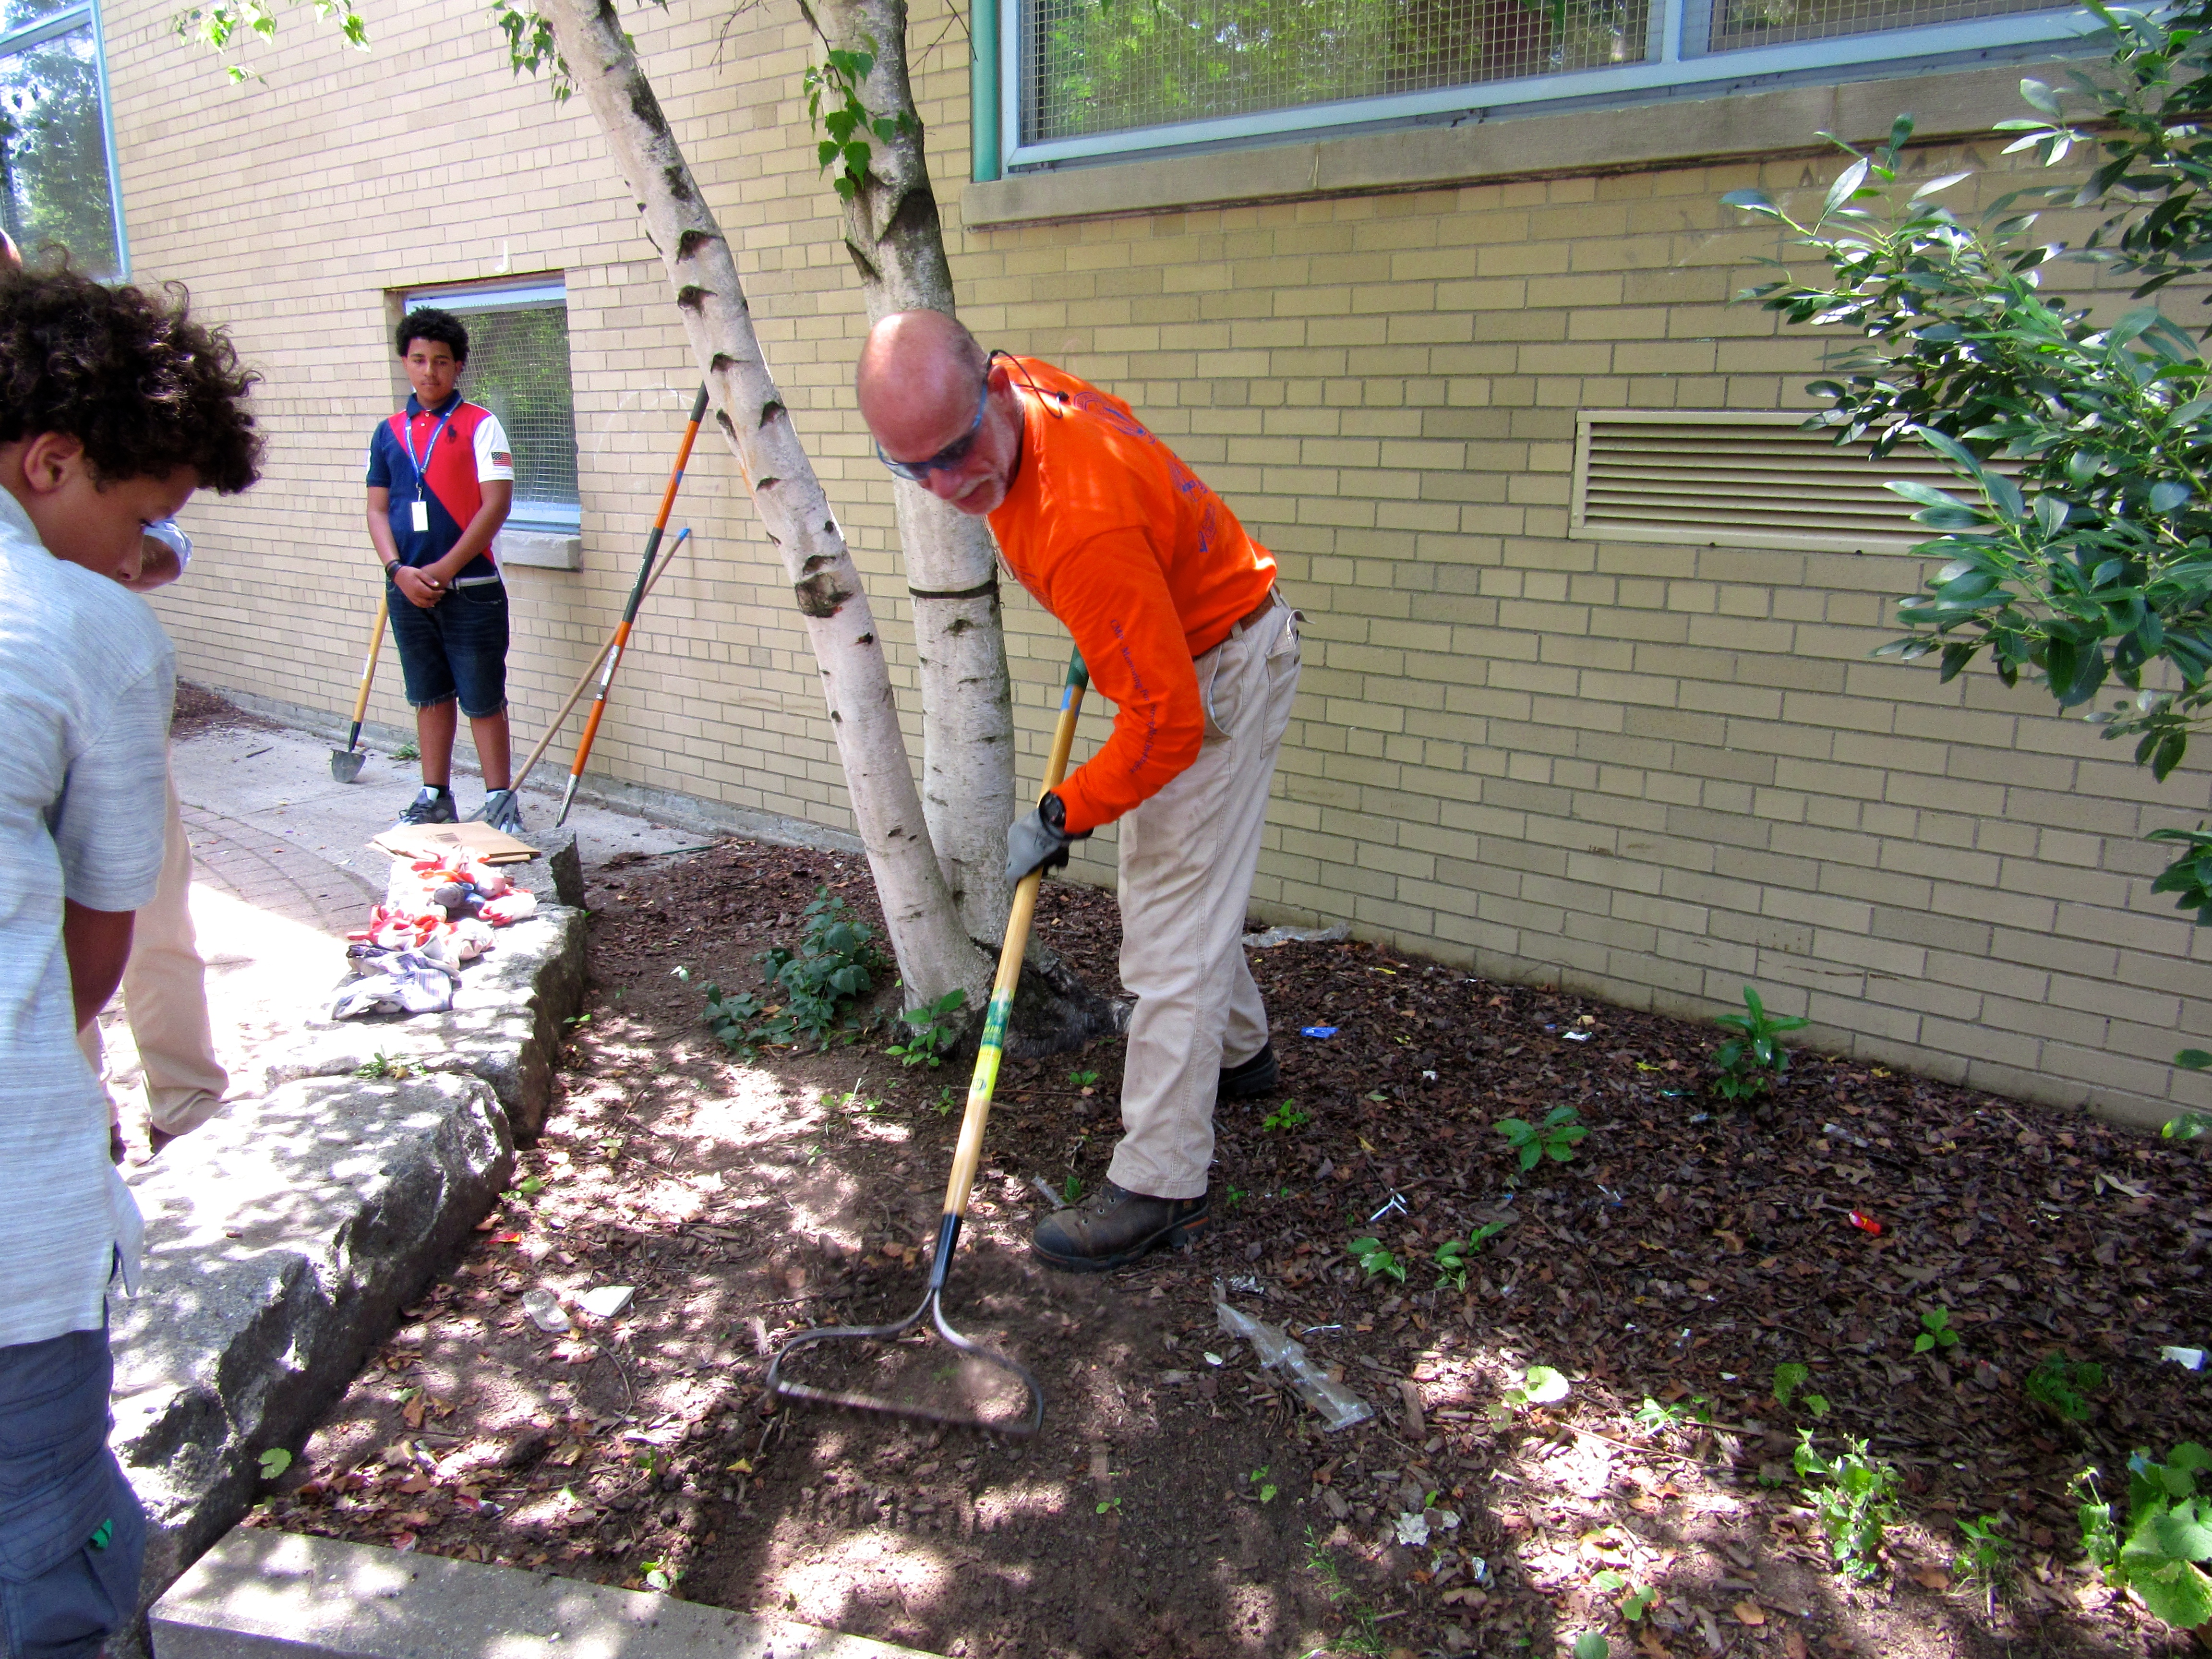 The coordinator demonstrated the Project Reach scholars how to use the rake tool.